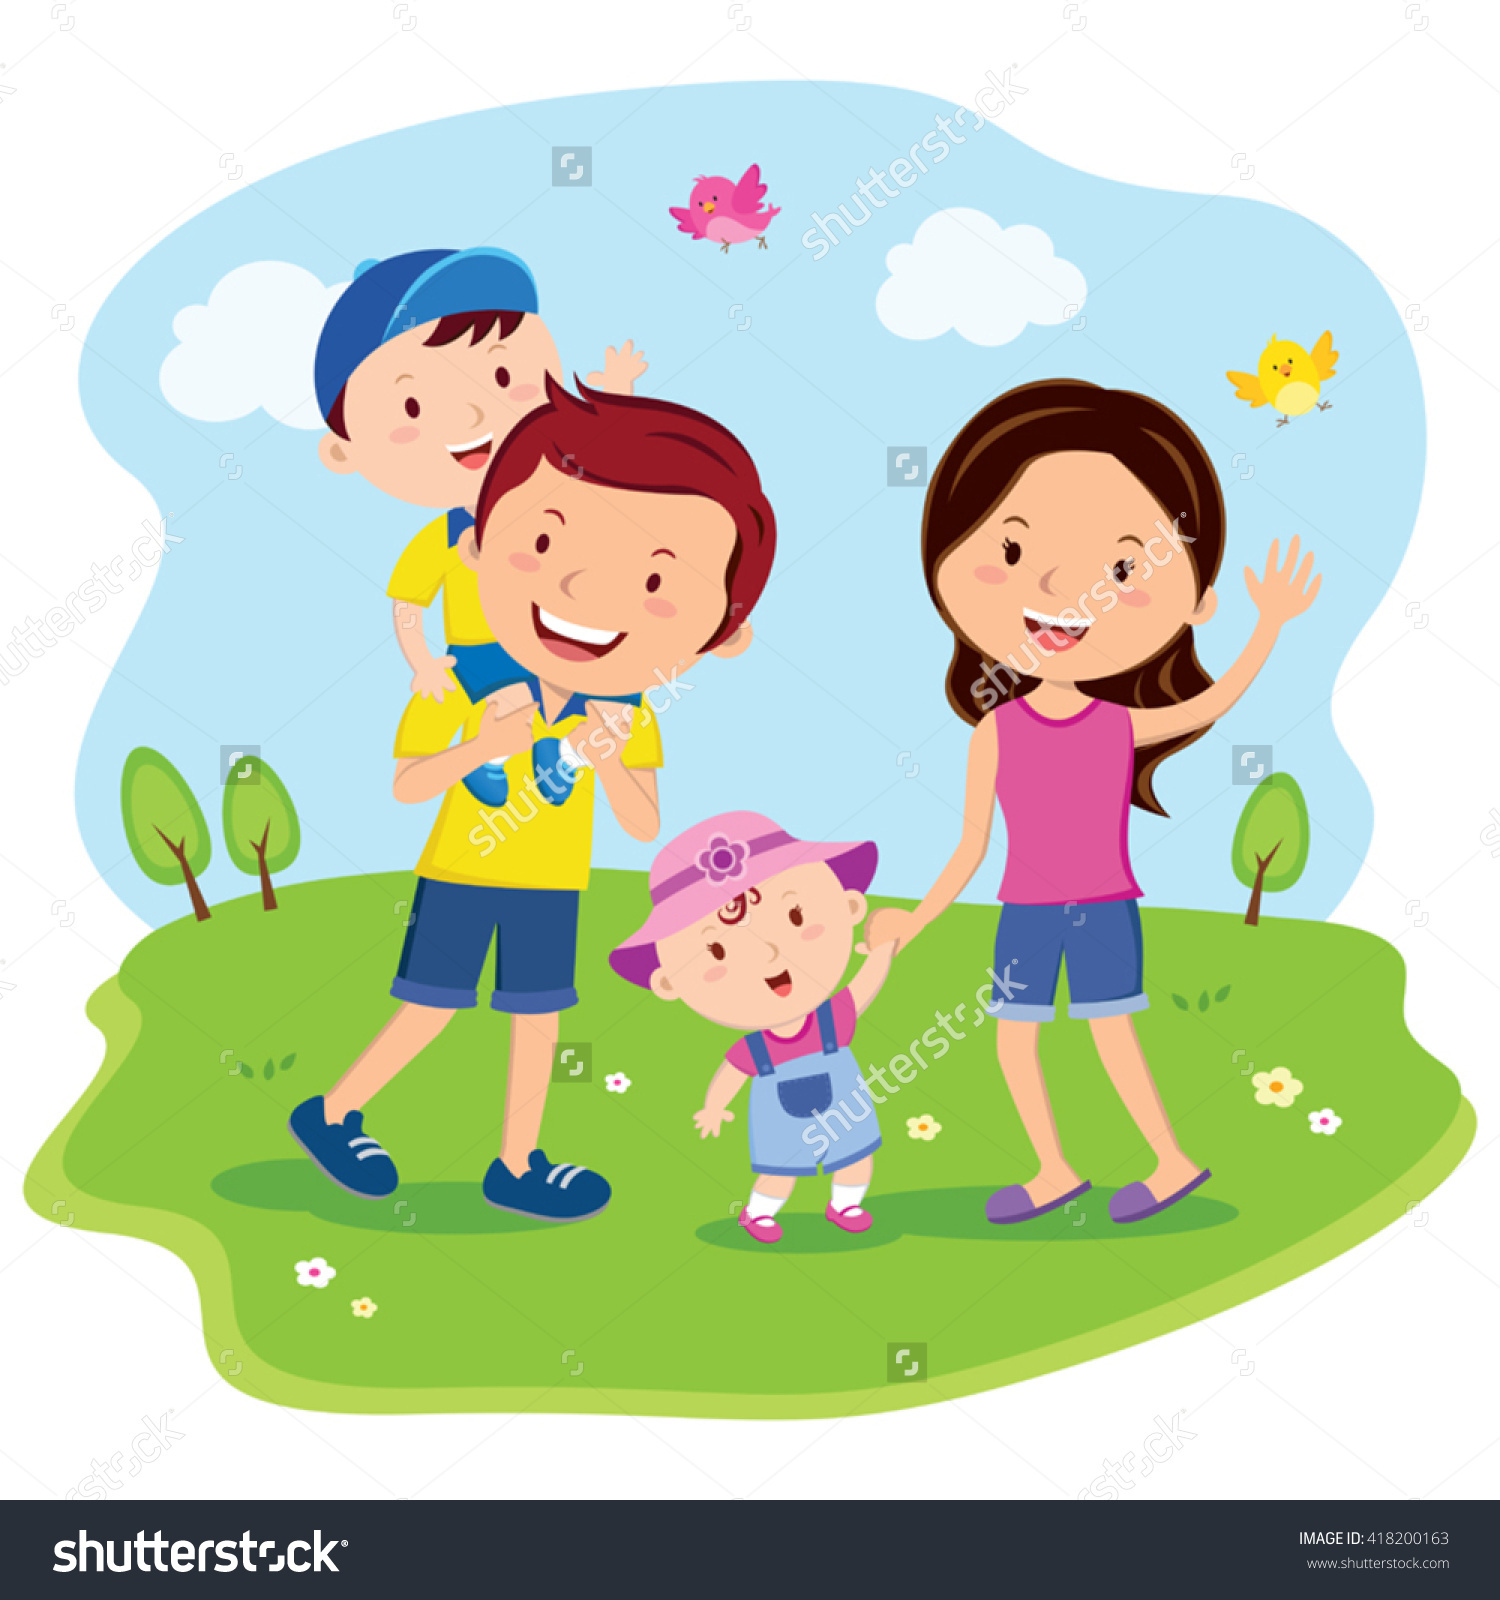 Happy Family Day Cheerful Family Outing Stock Vector 418200163.